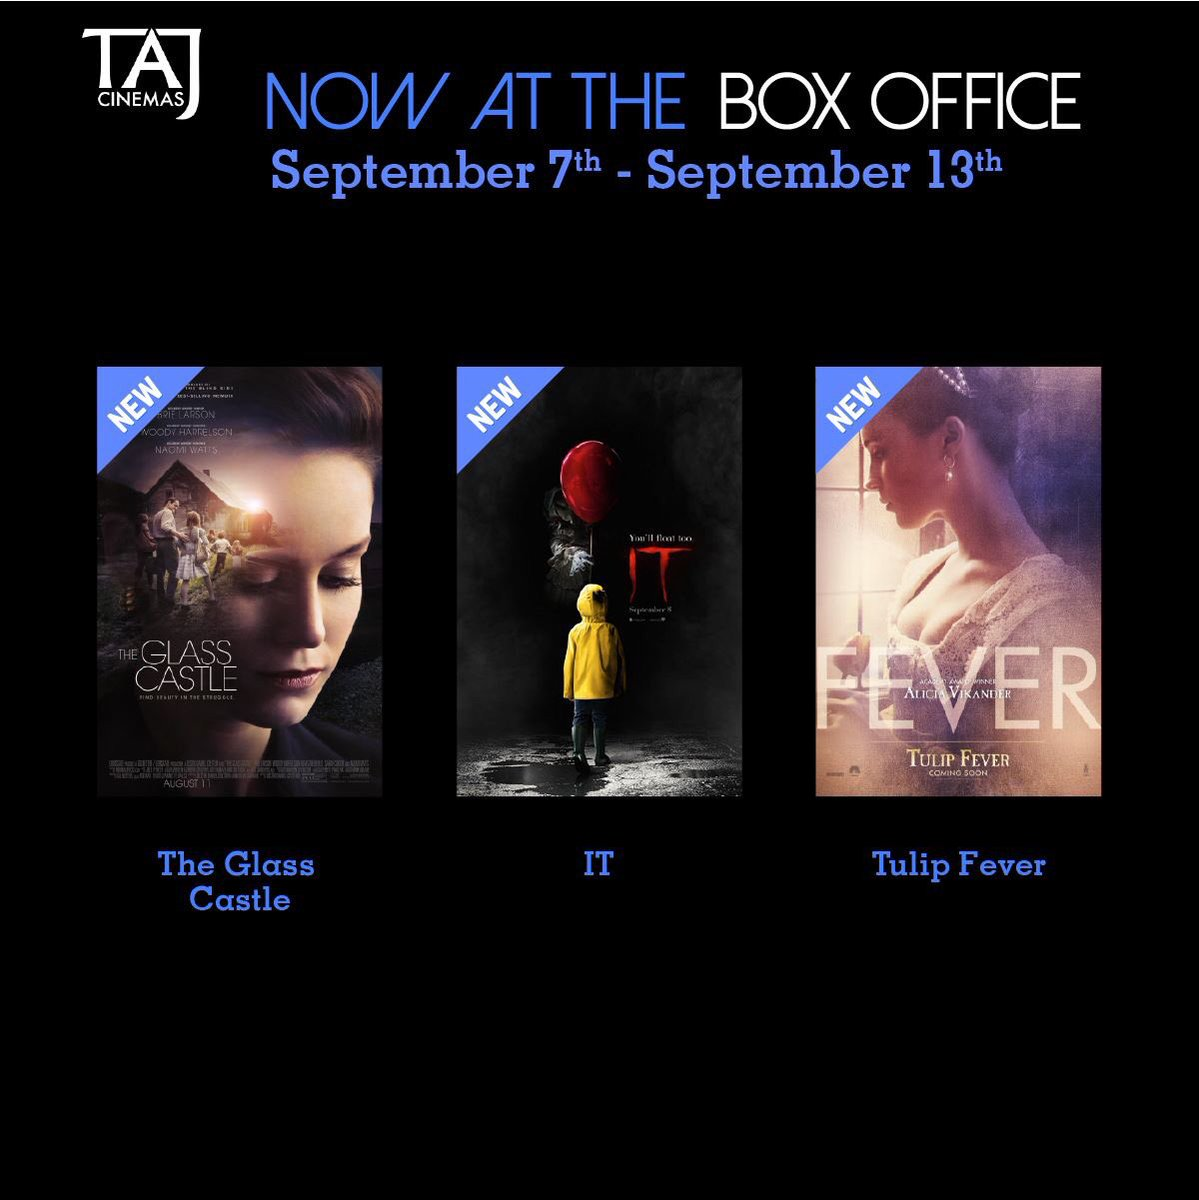 3 new movies at our box office for this week! TAG them friends who you want to watch a movie with. #TAJCinemas #Jo #Movies #Amman #Jordan https://t.co/CDJyEq6AvA